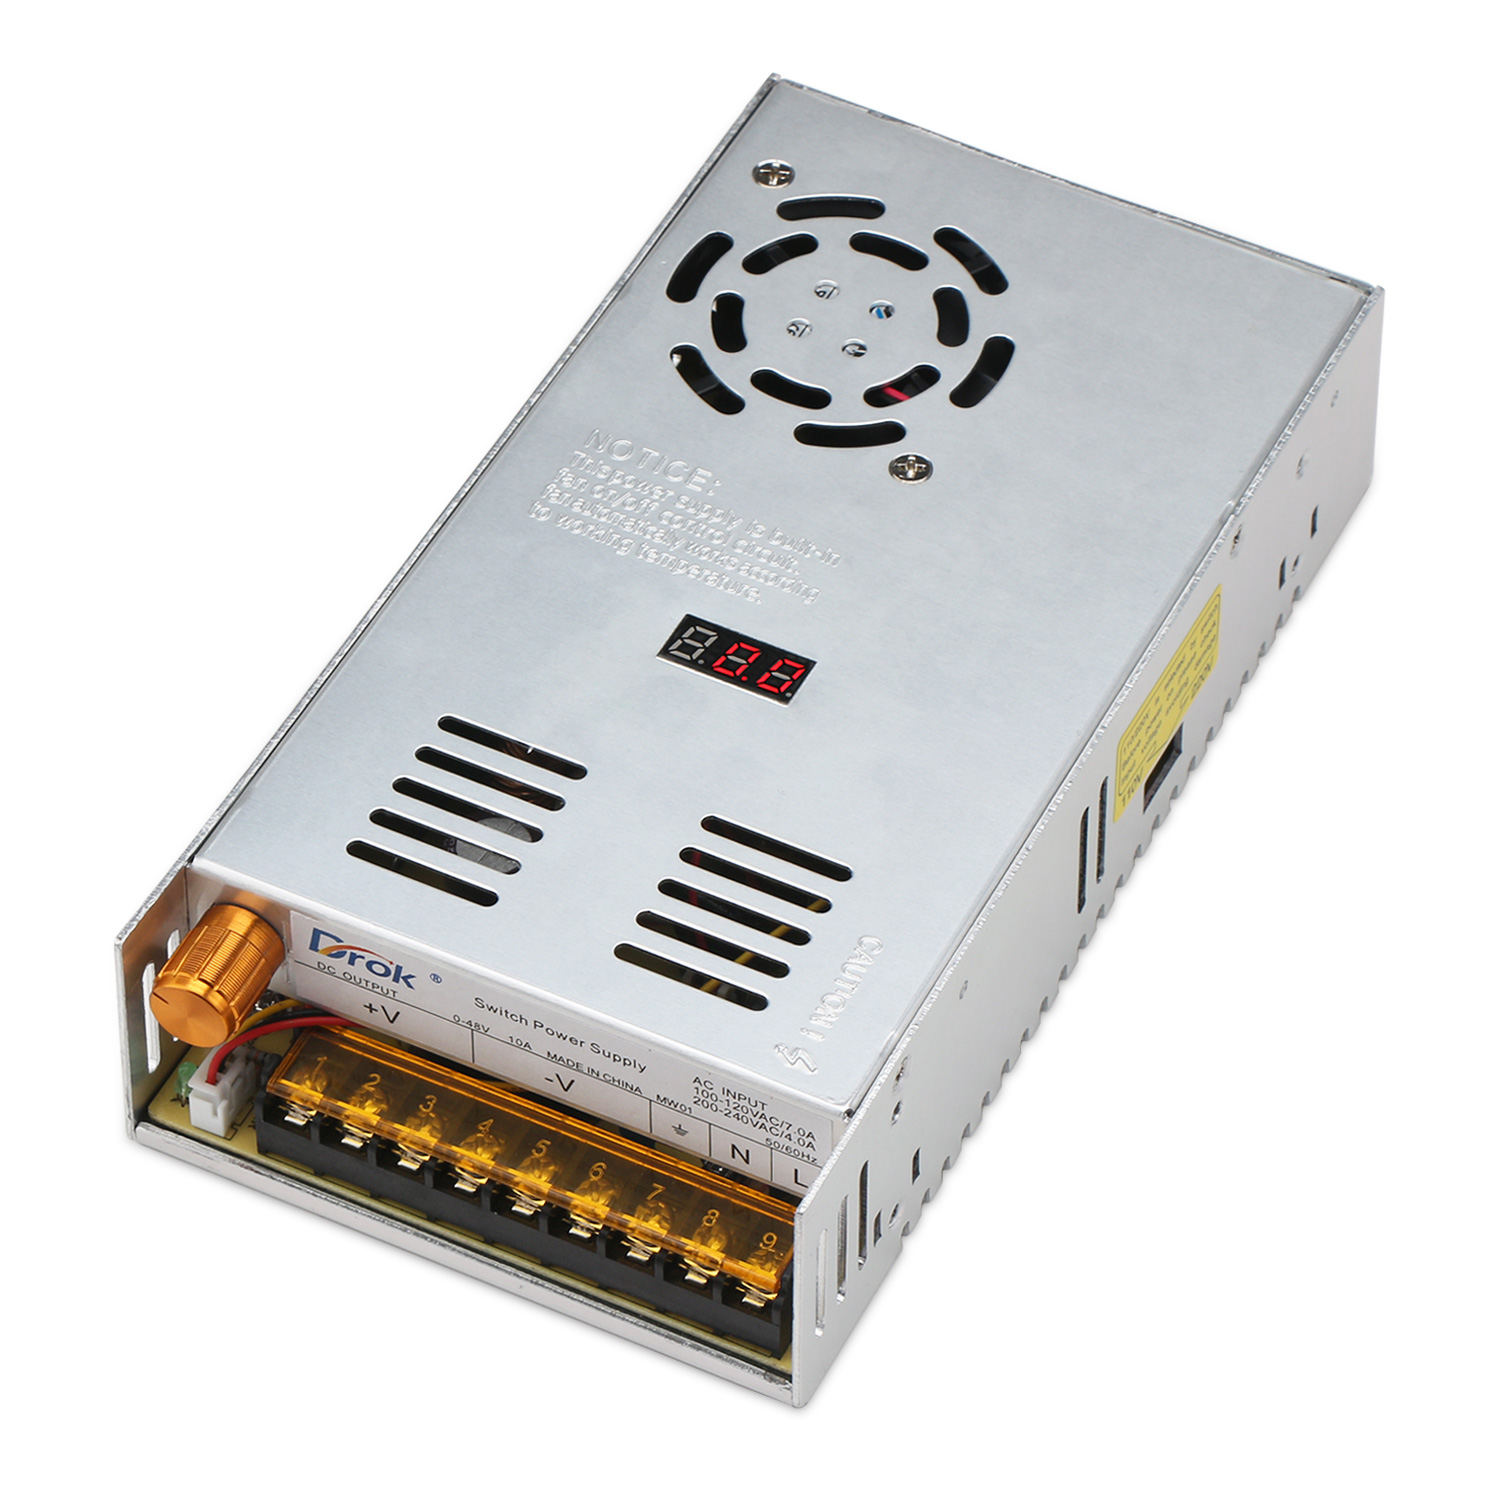 48w Ac Power Supply Switching Ac110220v To Dc0 48v 10a Led How Build Variable Voltage And Current 18 480w Display